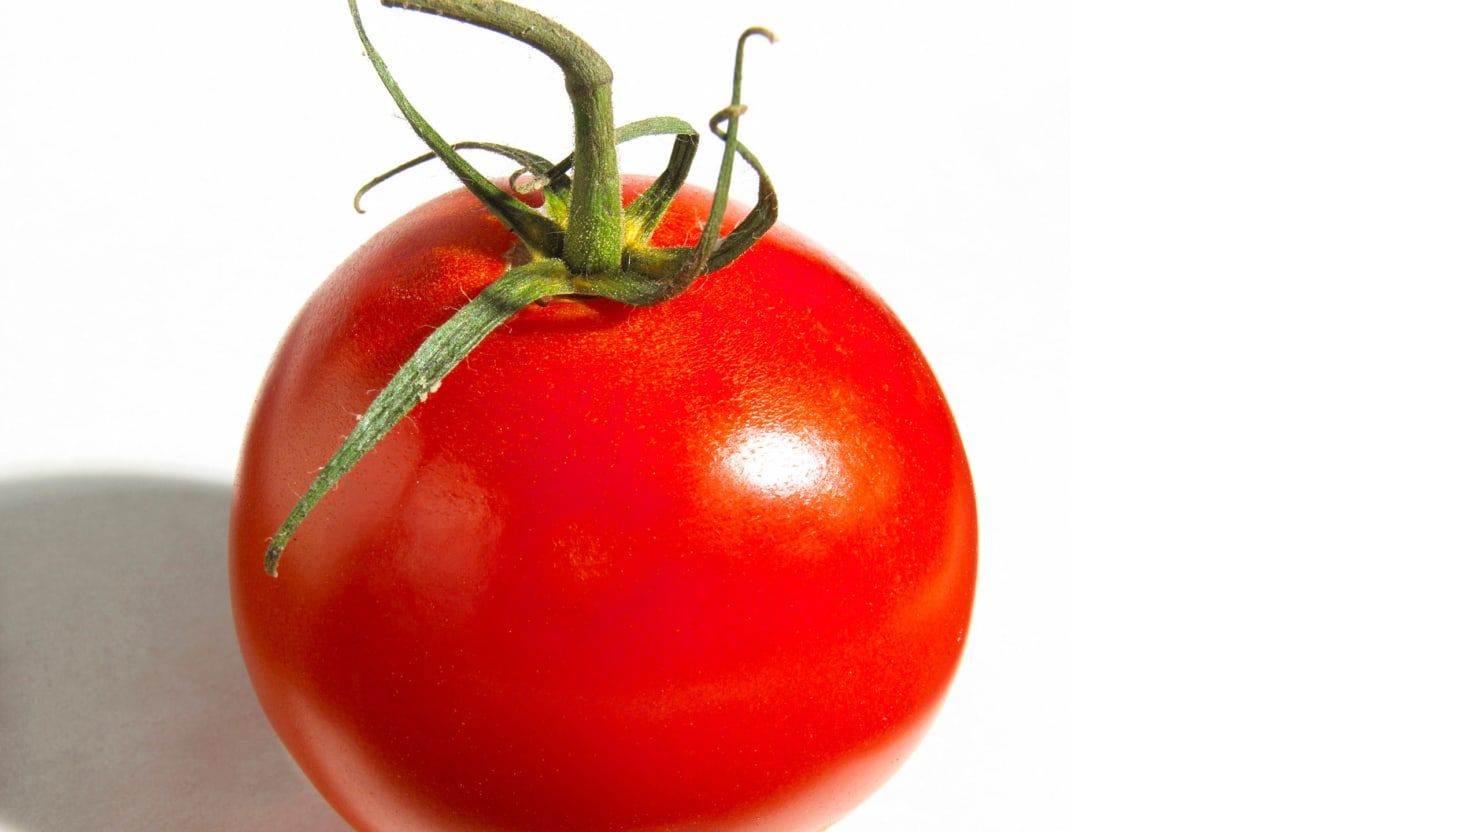 A Tomato a Day Keeps the Doctor Away